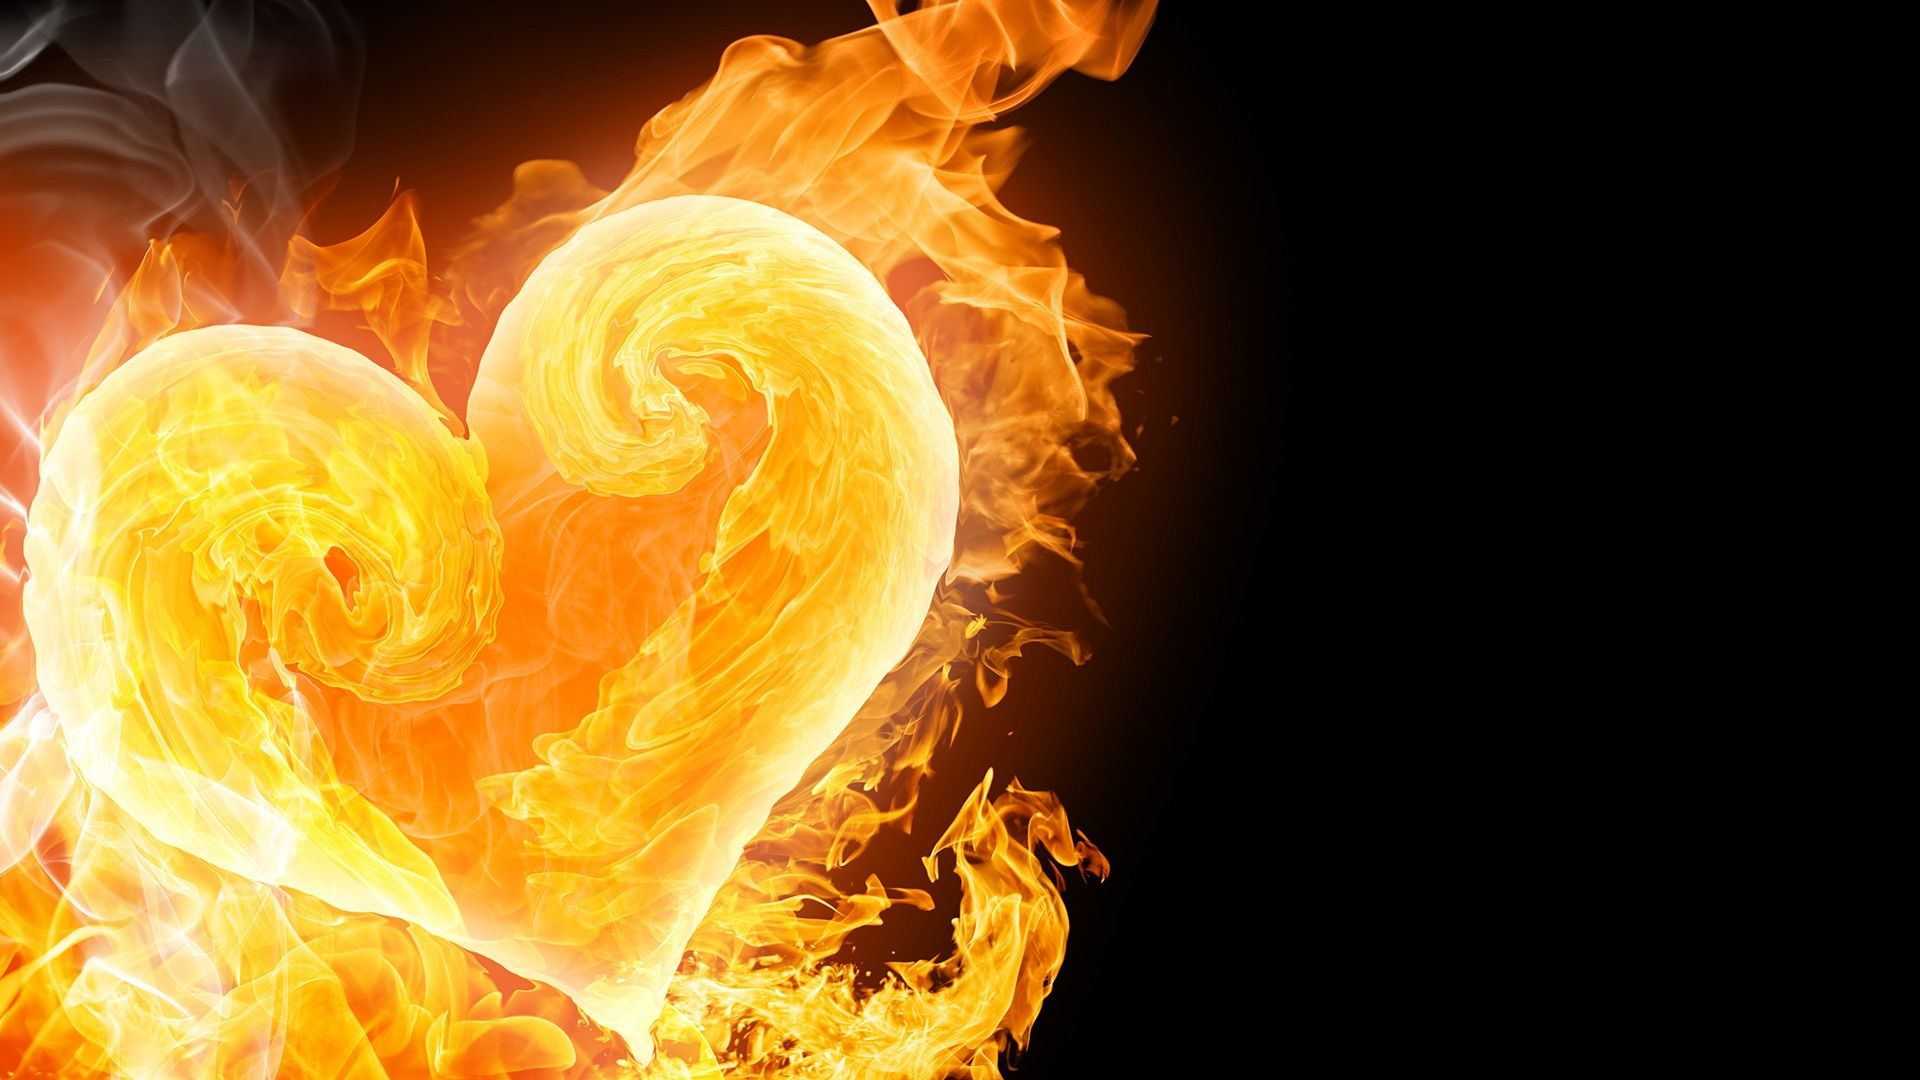 Fire and ice fractal abstract wallpaper hd wallpapers - Hearts Of Ice On Fire Holiday Wallpaper Named Heart Of Fire